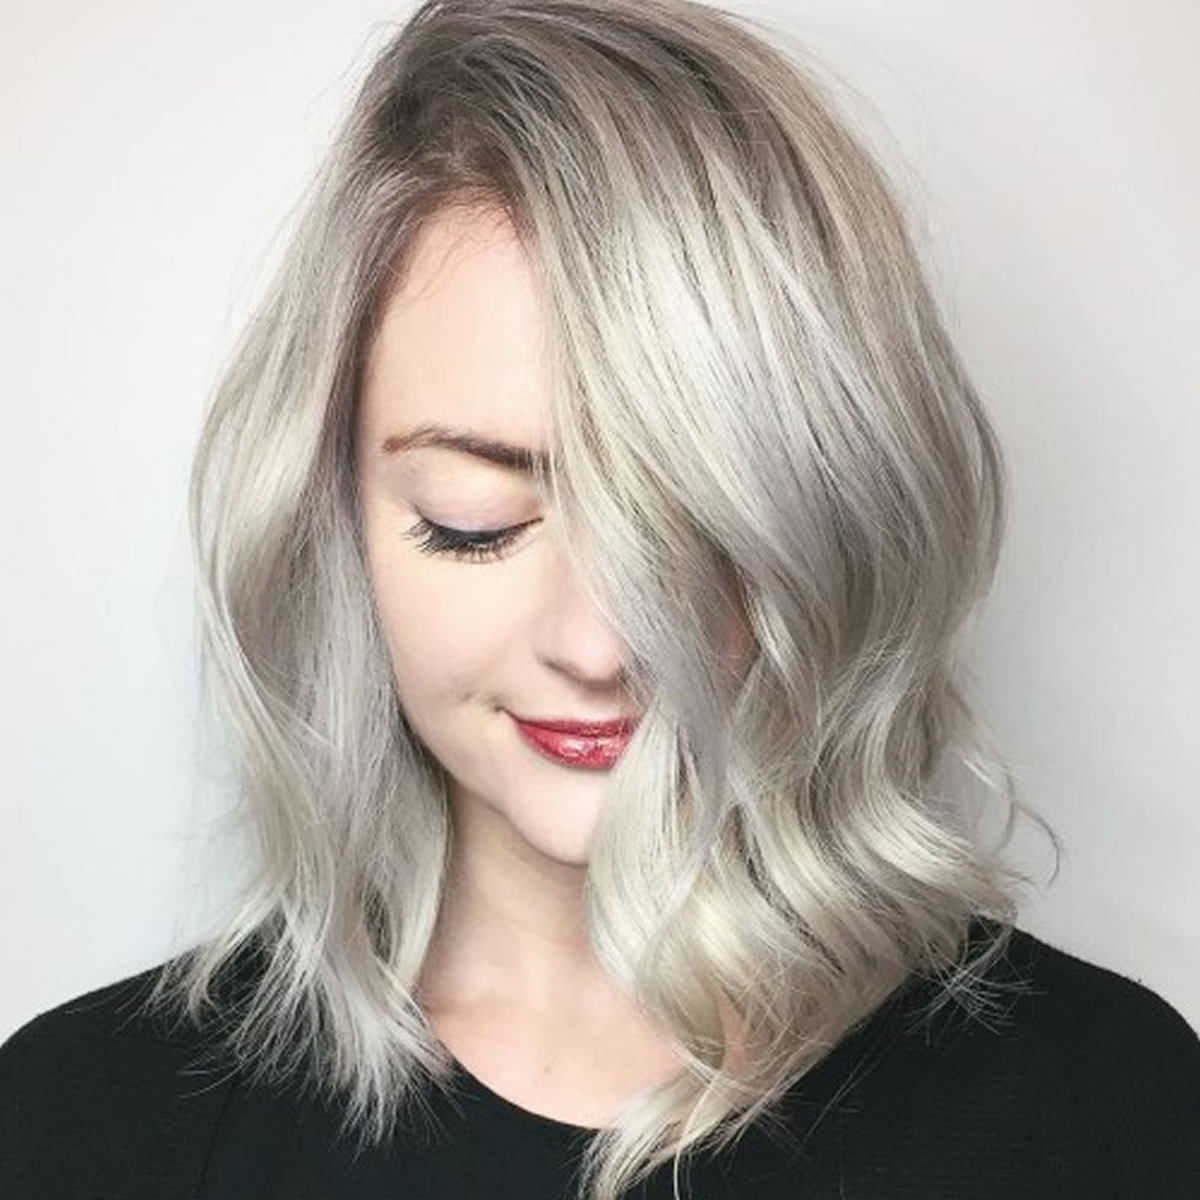 Bobbed Haircuts 2019  Bob Hairstyles for 2018 Inspiring 60 Long Bob Haircut